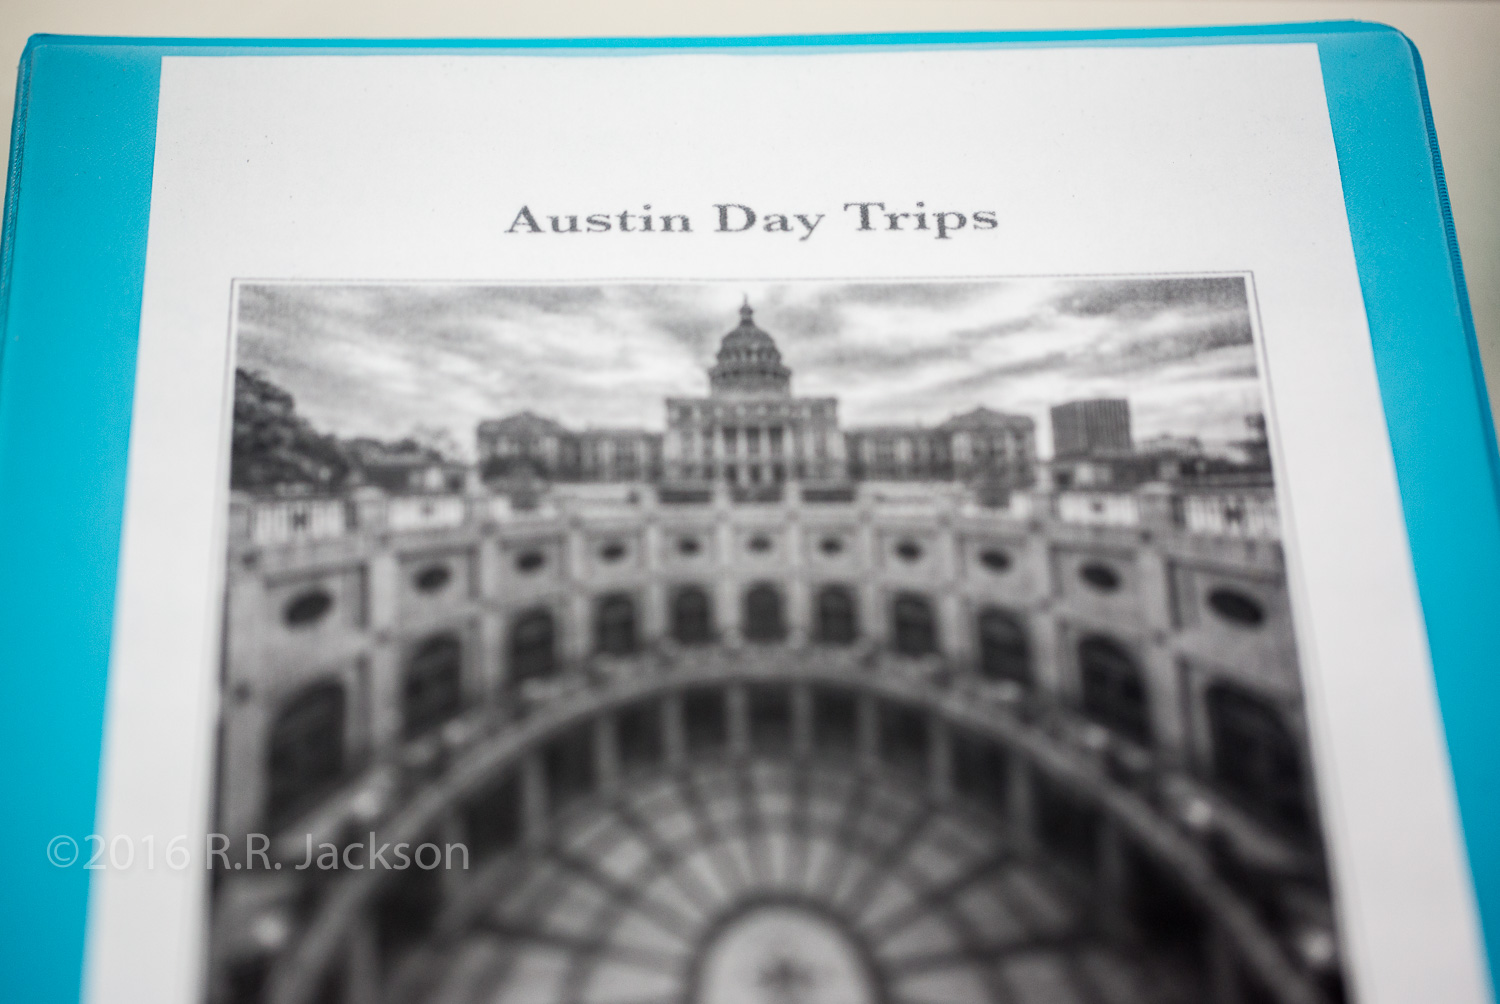 Austin Day Trips - Near and Far